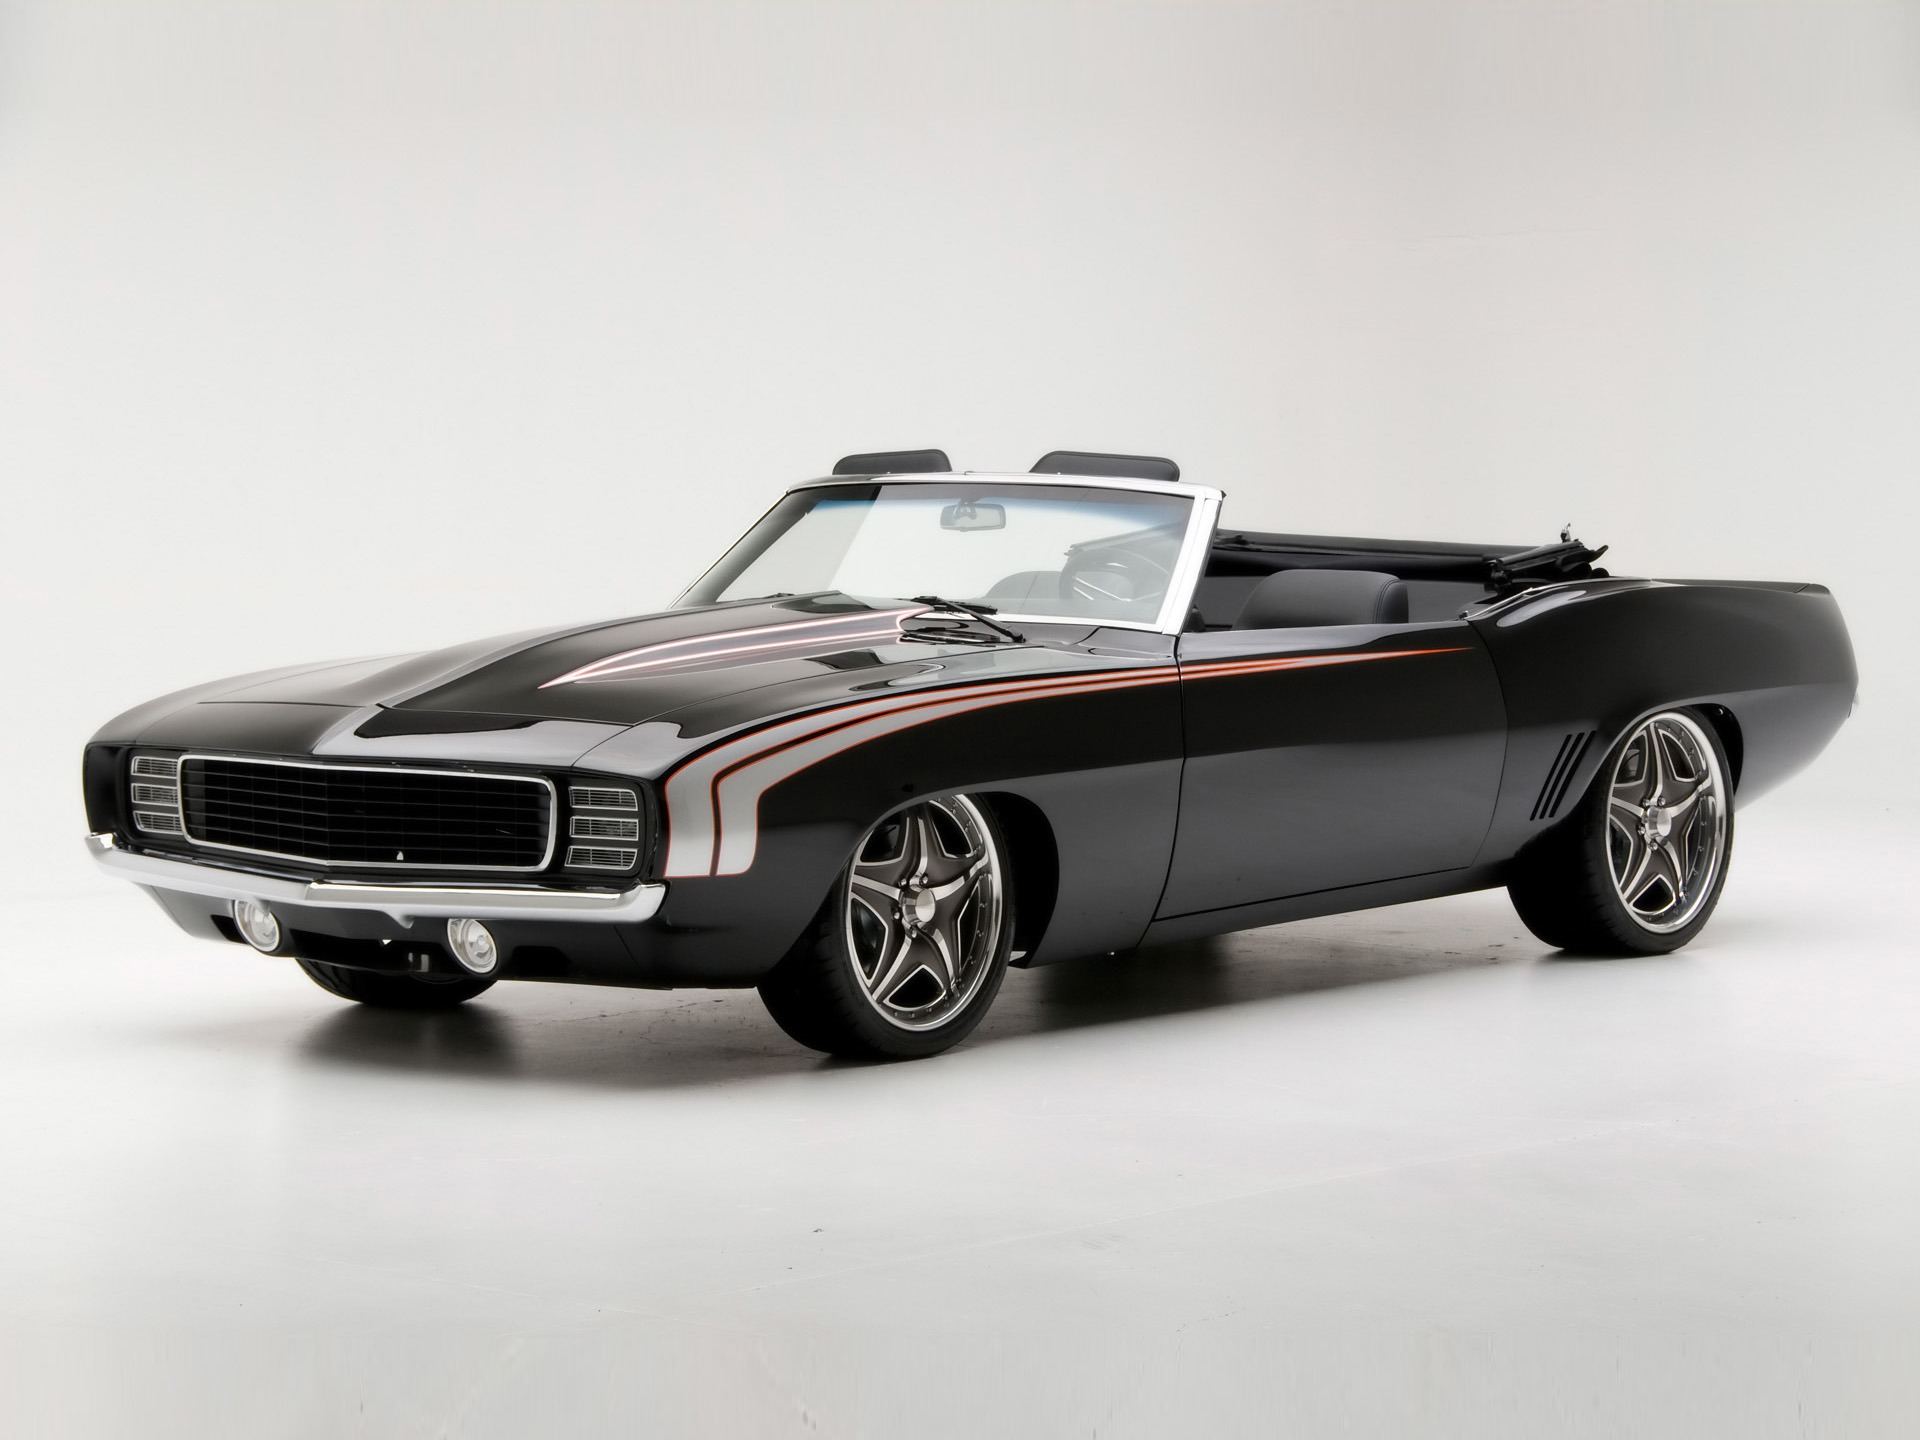 1969 Camaro Convertible Wallpaper Muscle Cars Cars ...